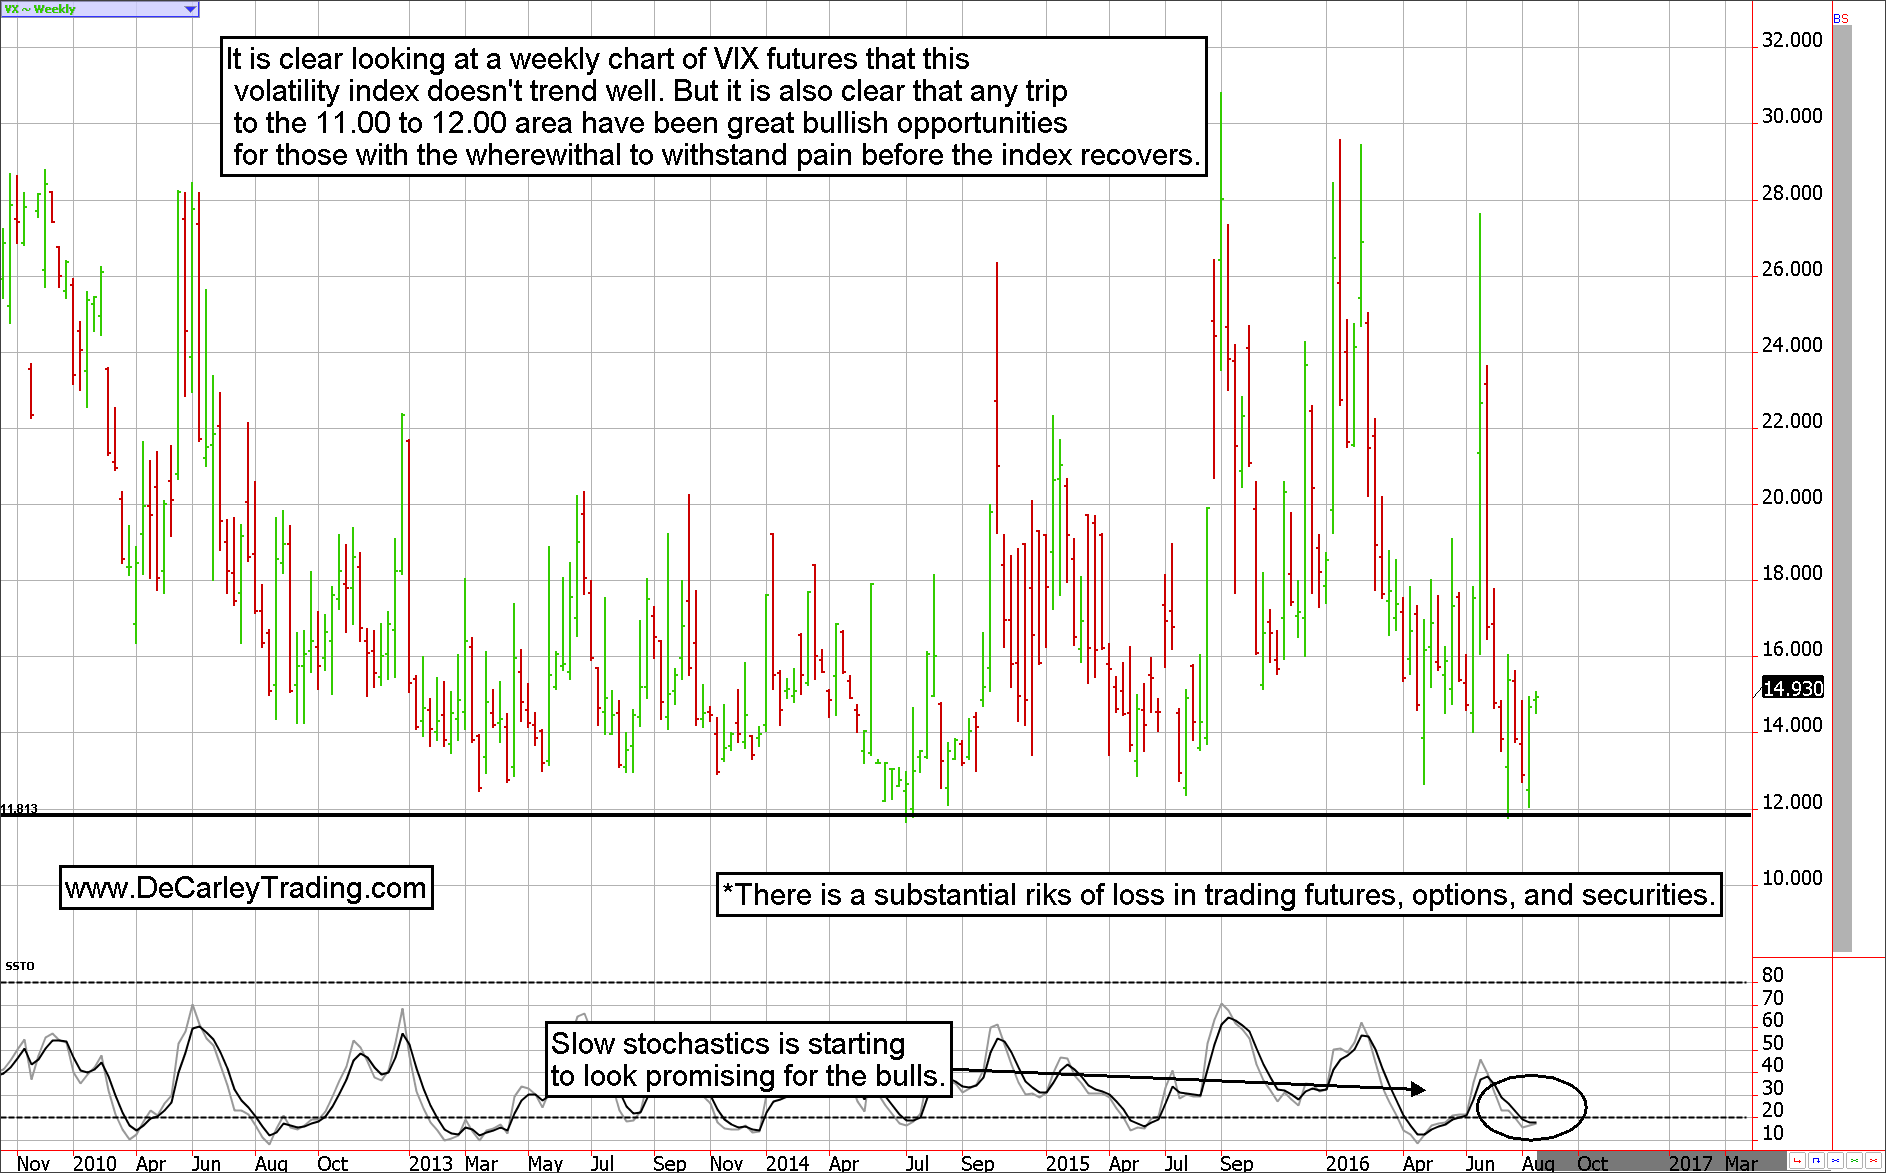 VIX Volatility Index Futures Chart